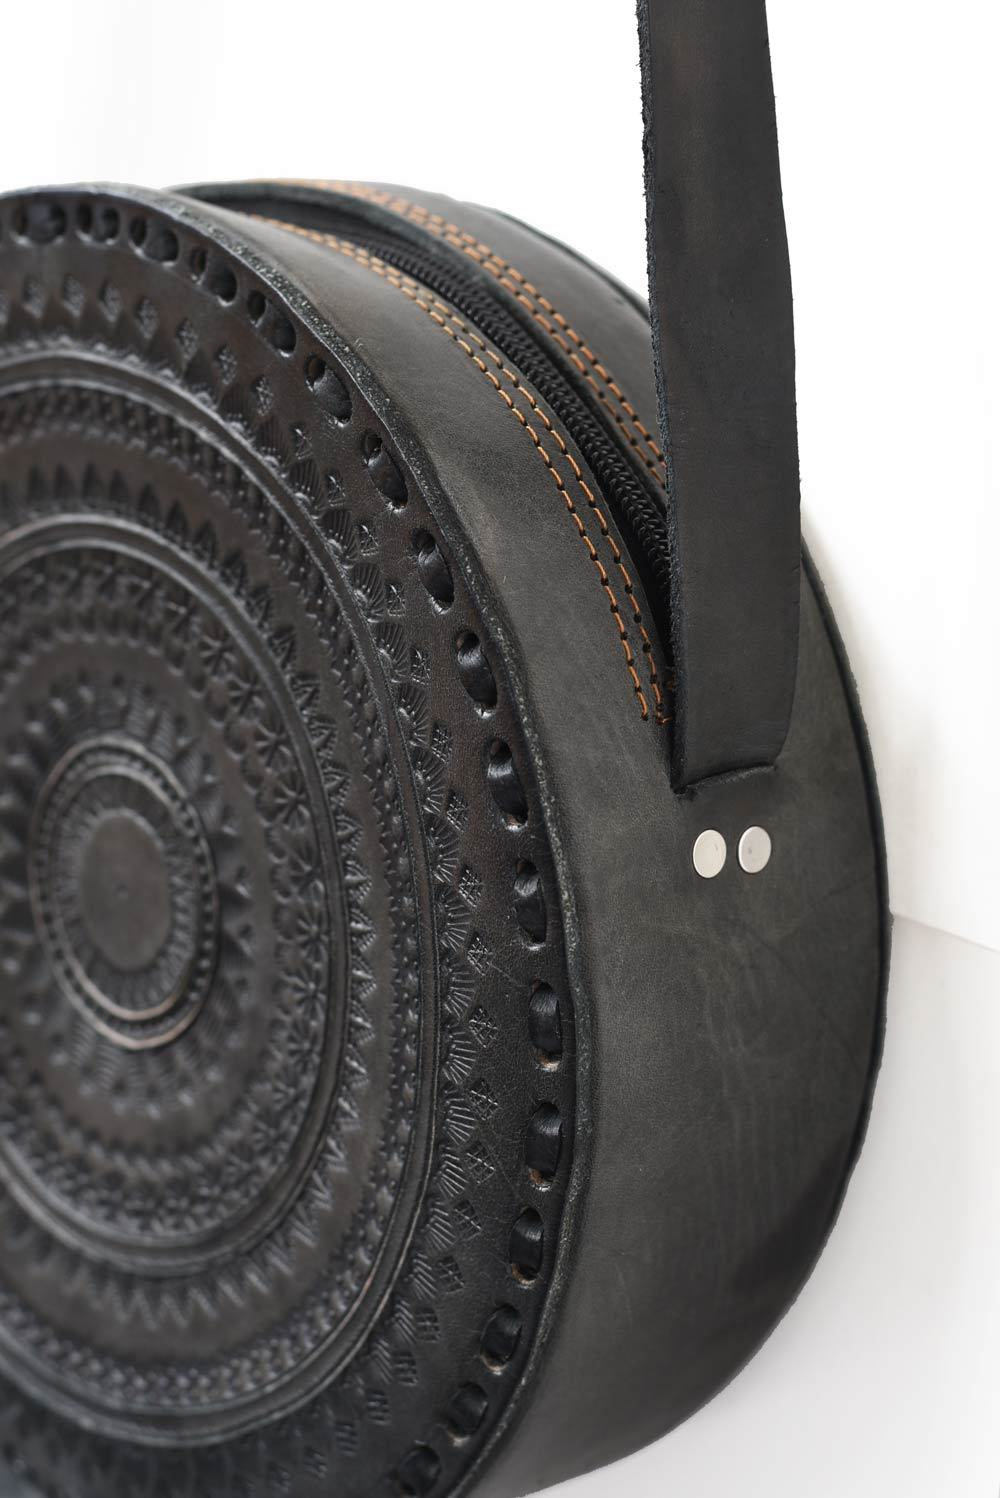 Embossed Leather Round Crossbody Purse - do good shop ethical gifts